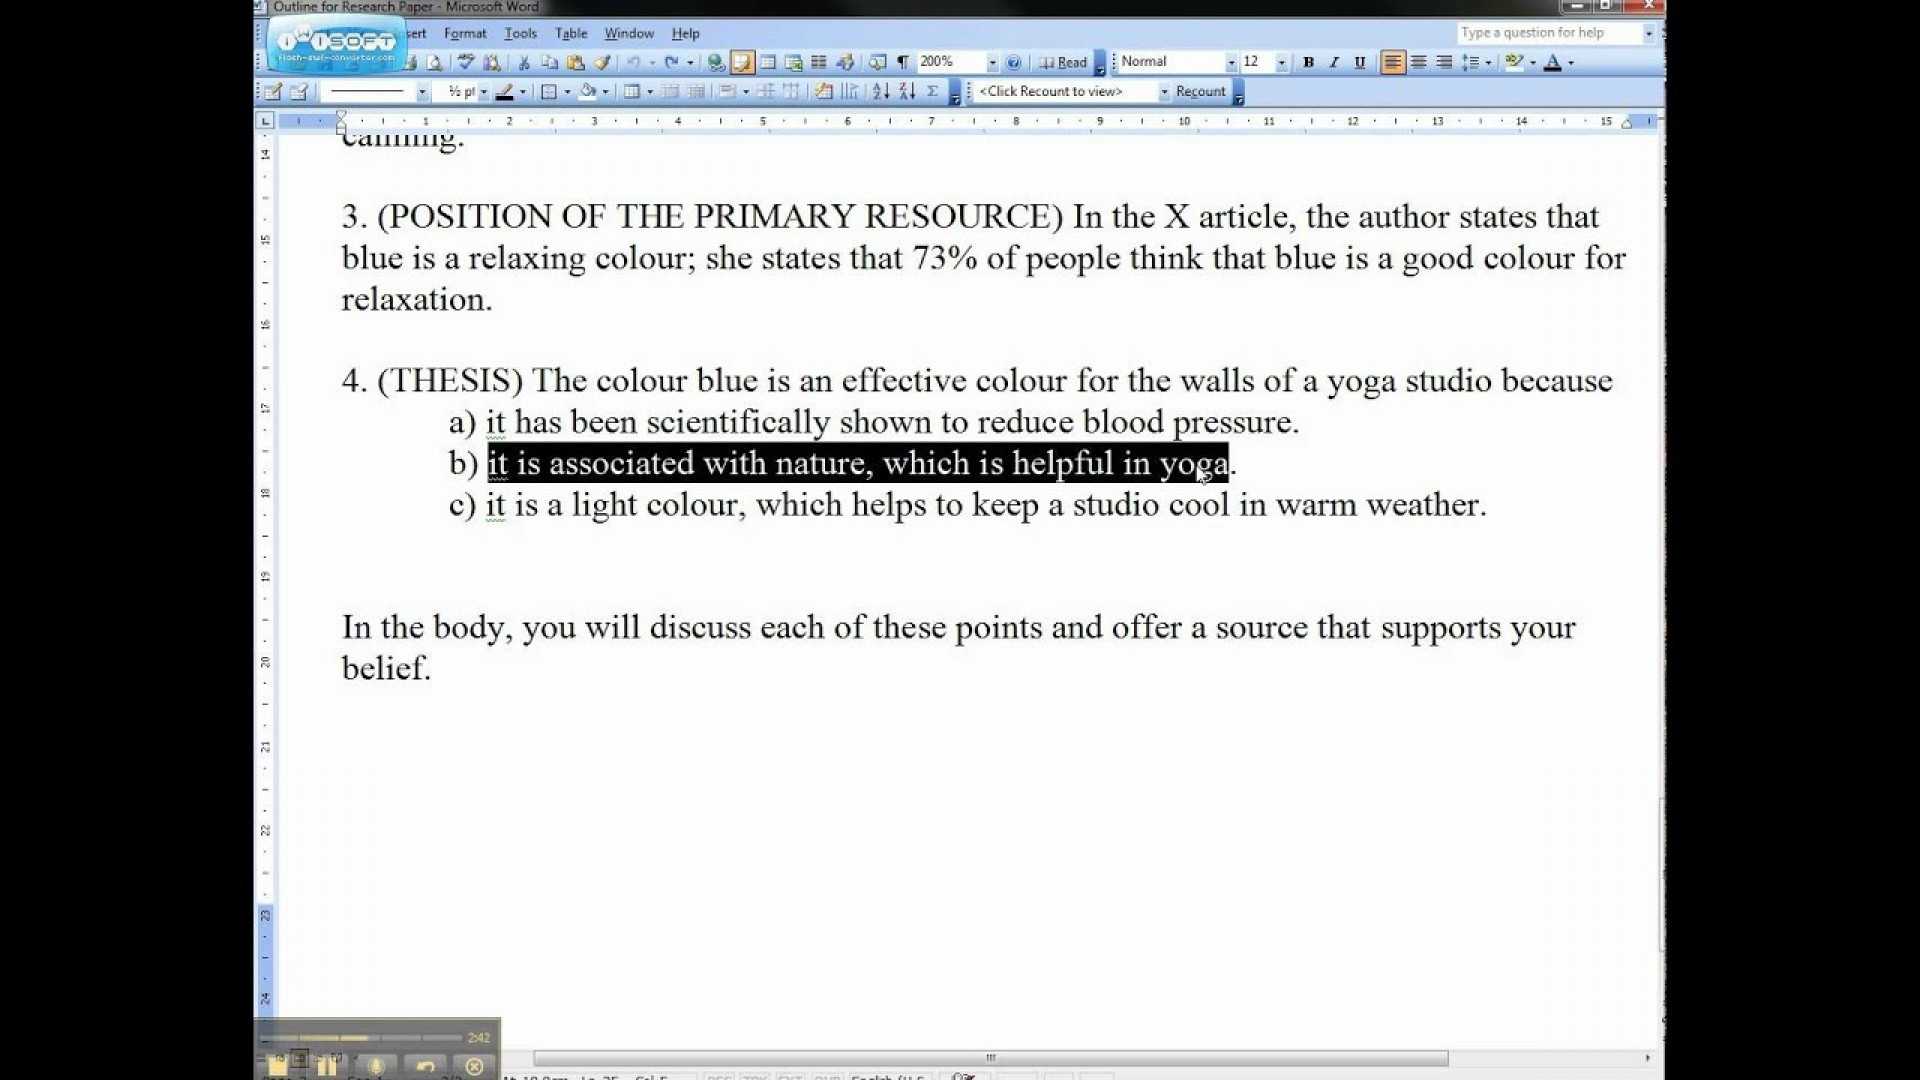 018 Thesis Essay Example Stupendous Antithesis Synthesis Structure Driven Template Paper Outline 1920